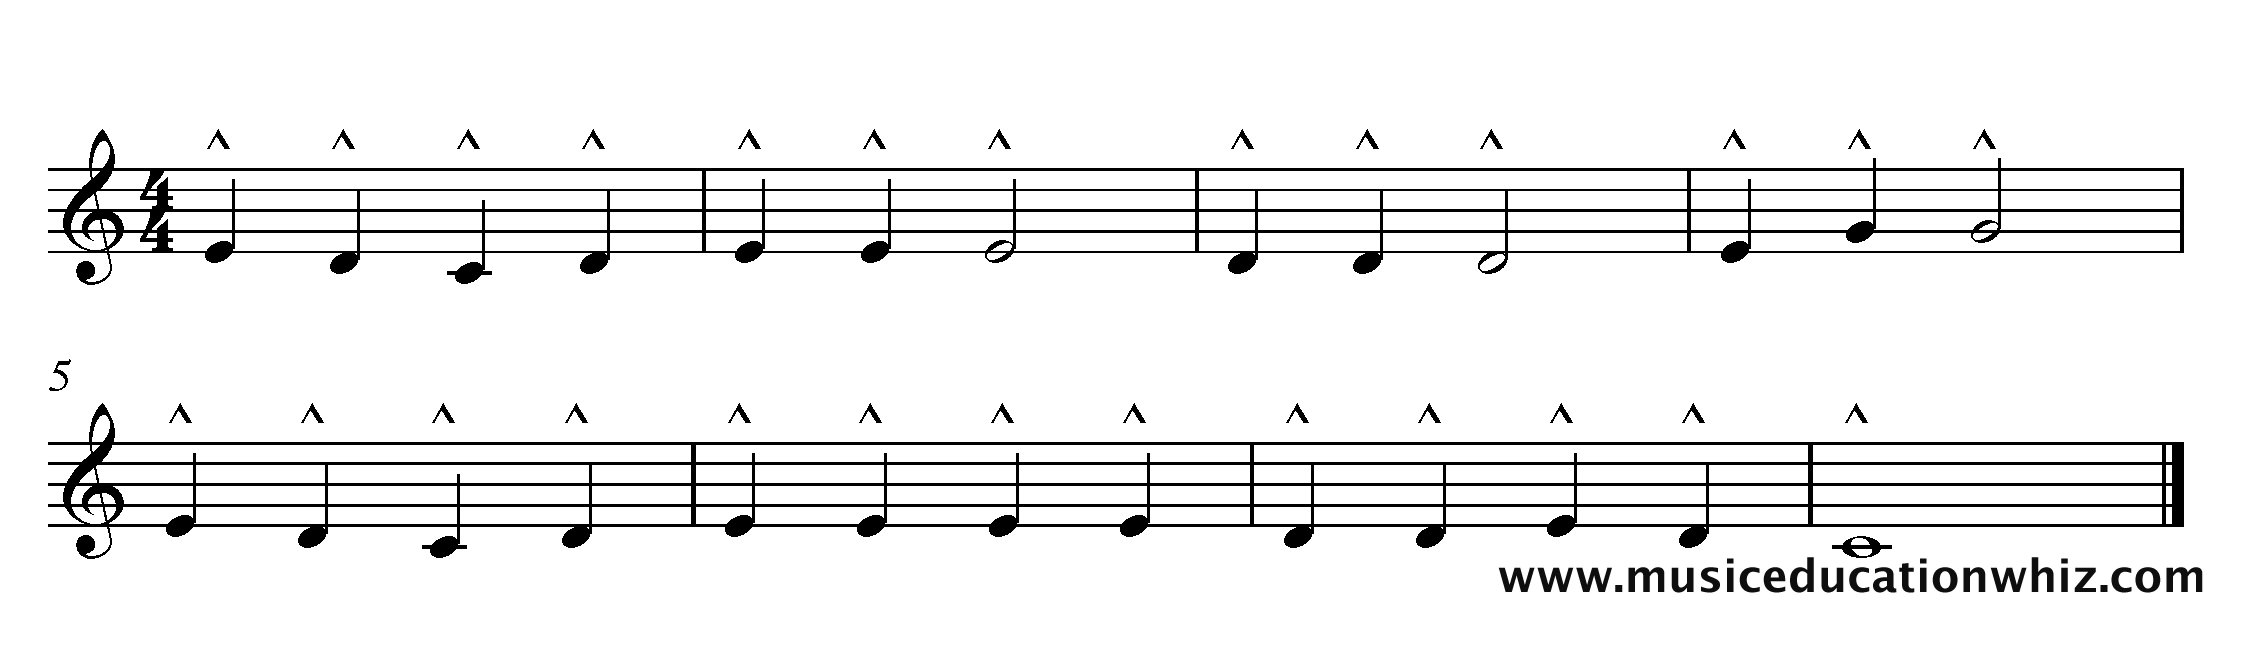 The music for 'Mary Had A Little Lamb' with marcato markings.